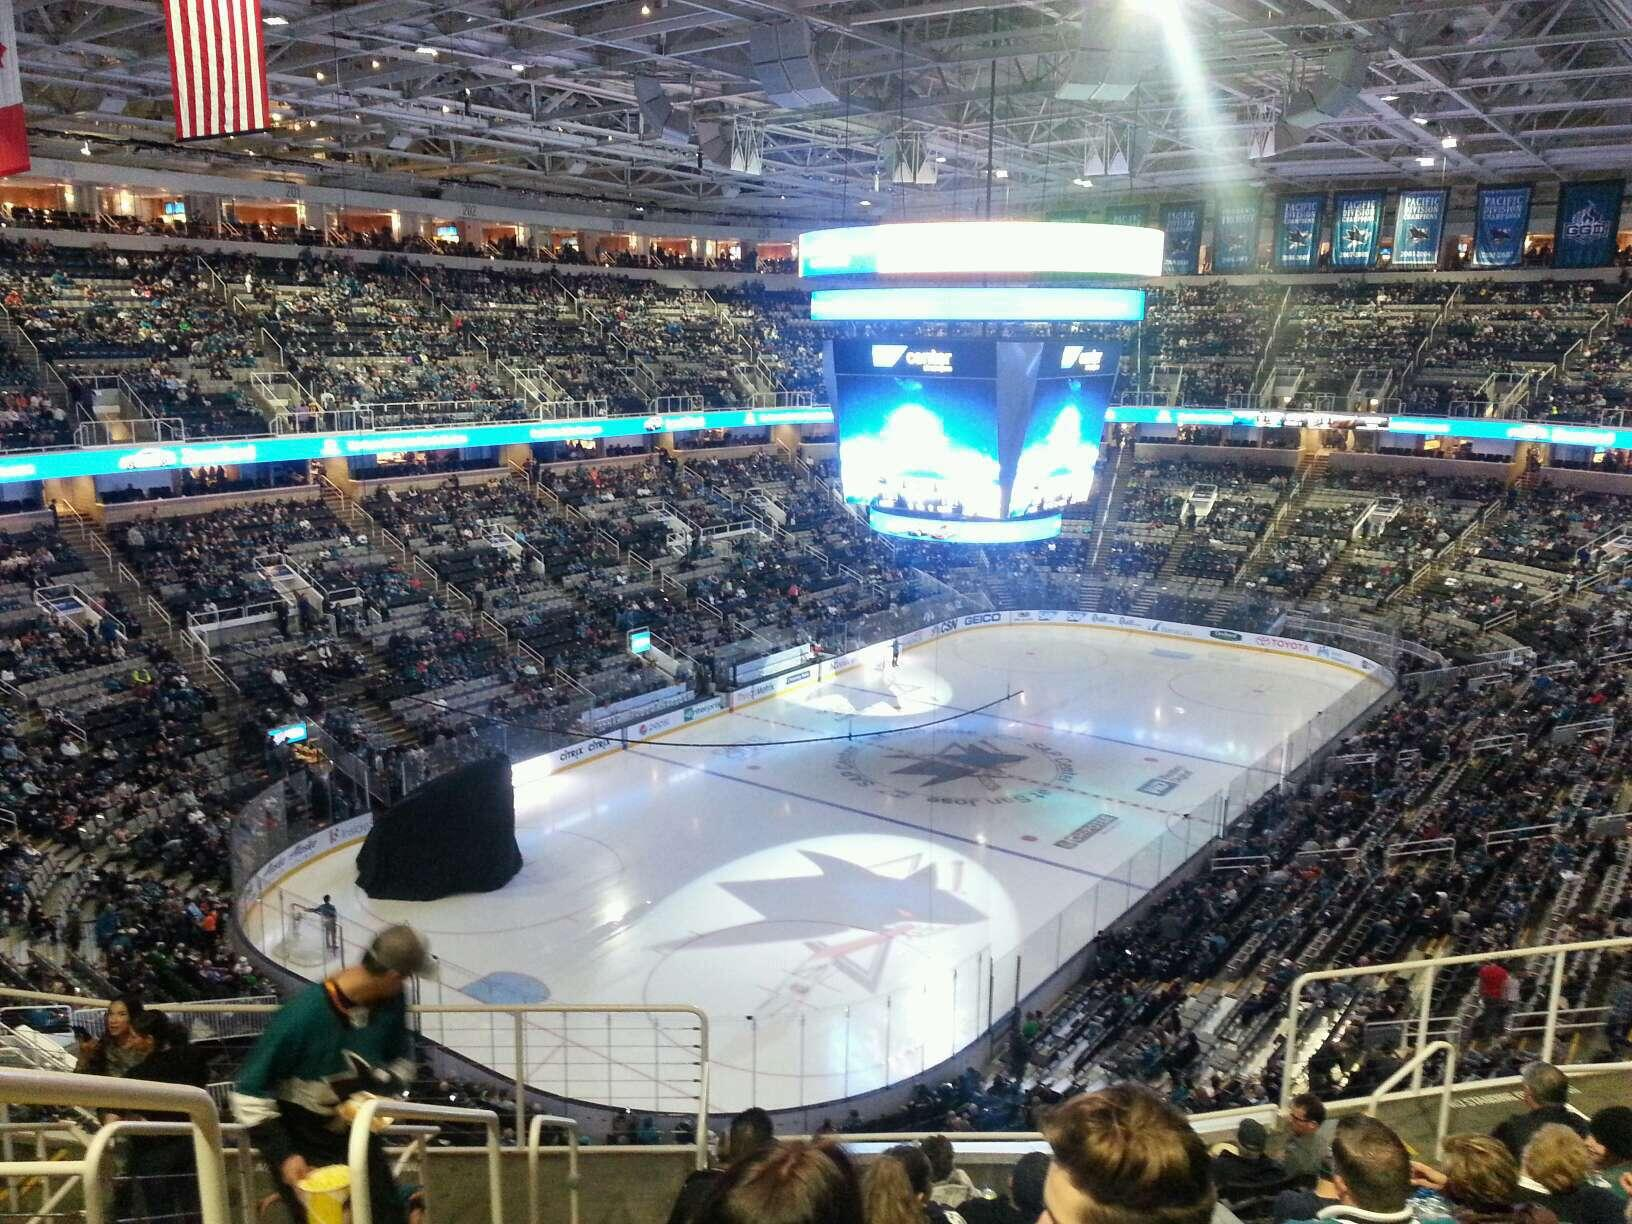 SAP Center Section 219 Row 10 Seat 19